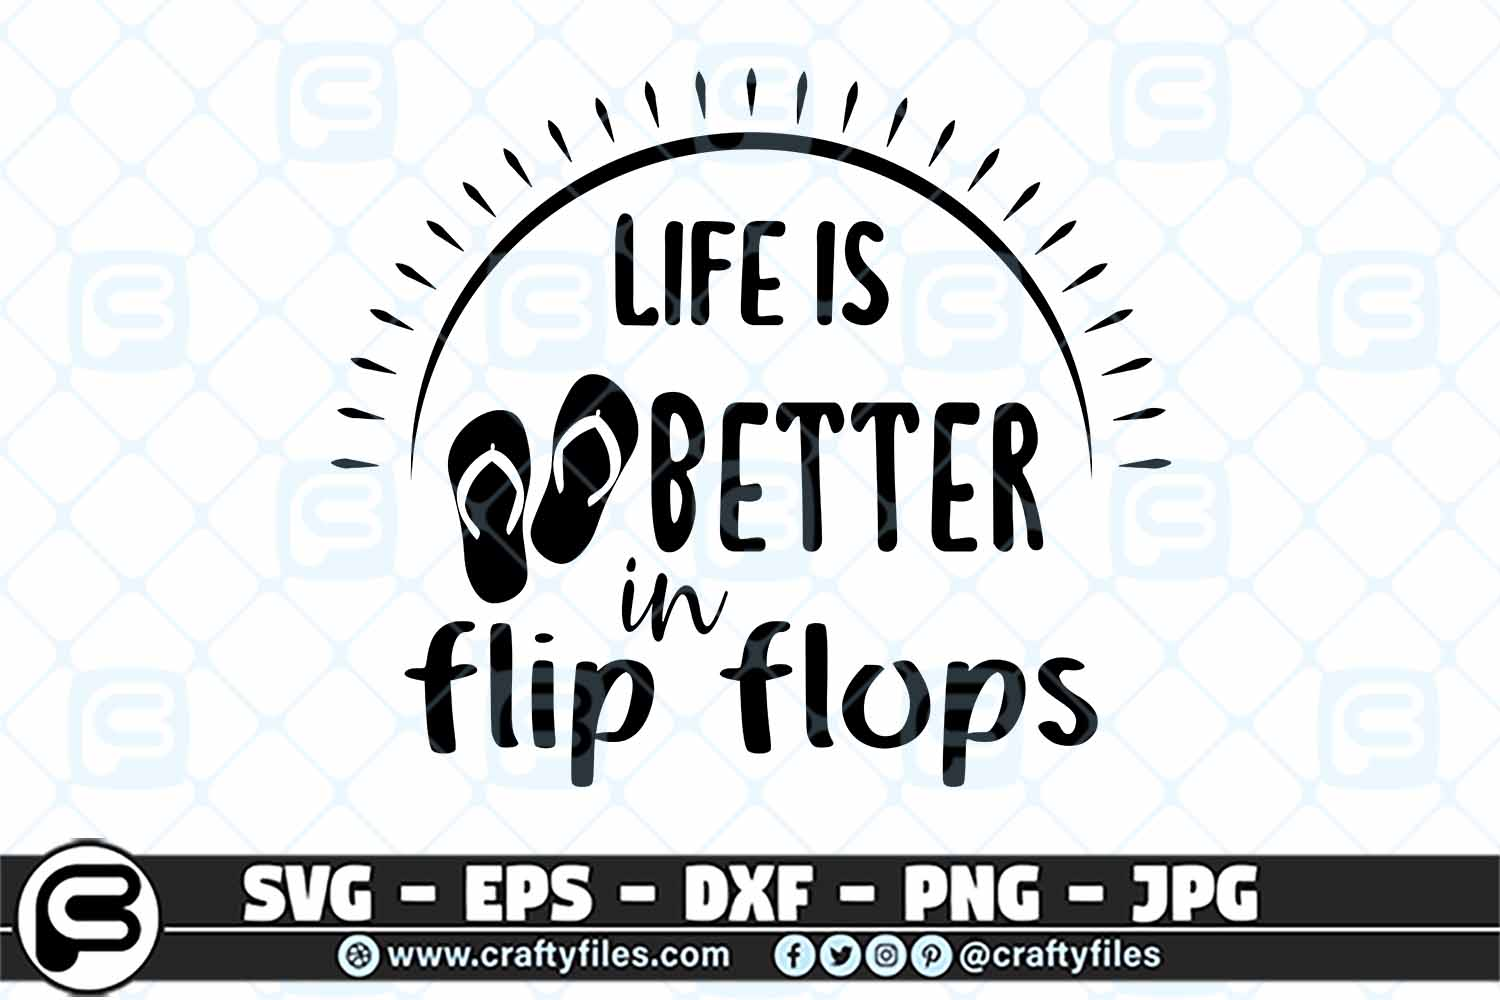 Svg Files Plus Size Svg Free Svg Cut Files Svg Cut Files Are A Graphic Type That Can Be Scaled To Use With The Silhouette Cameo Or Cricut